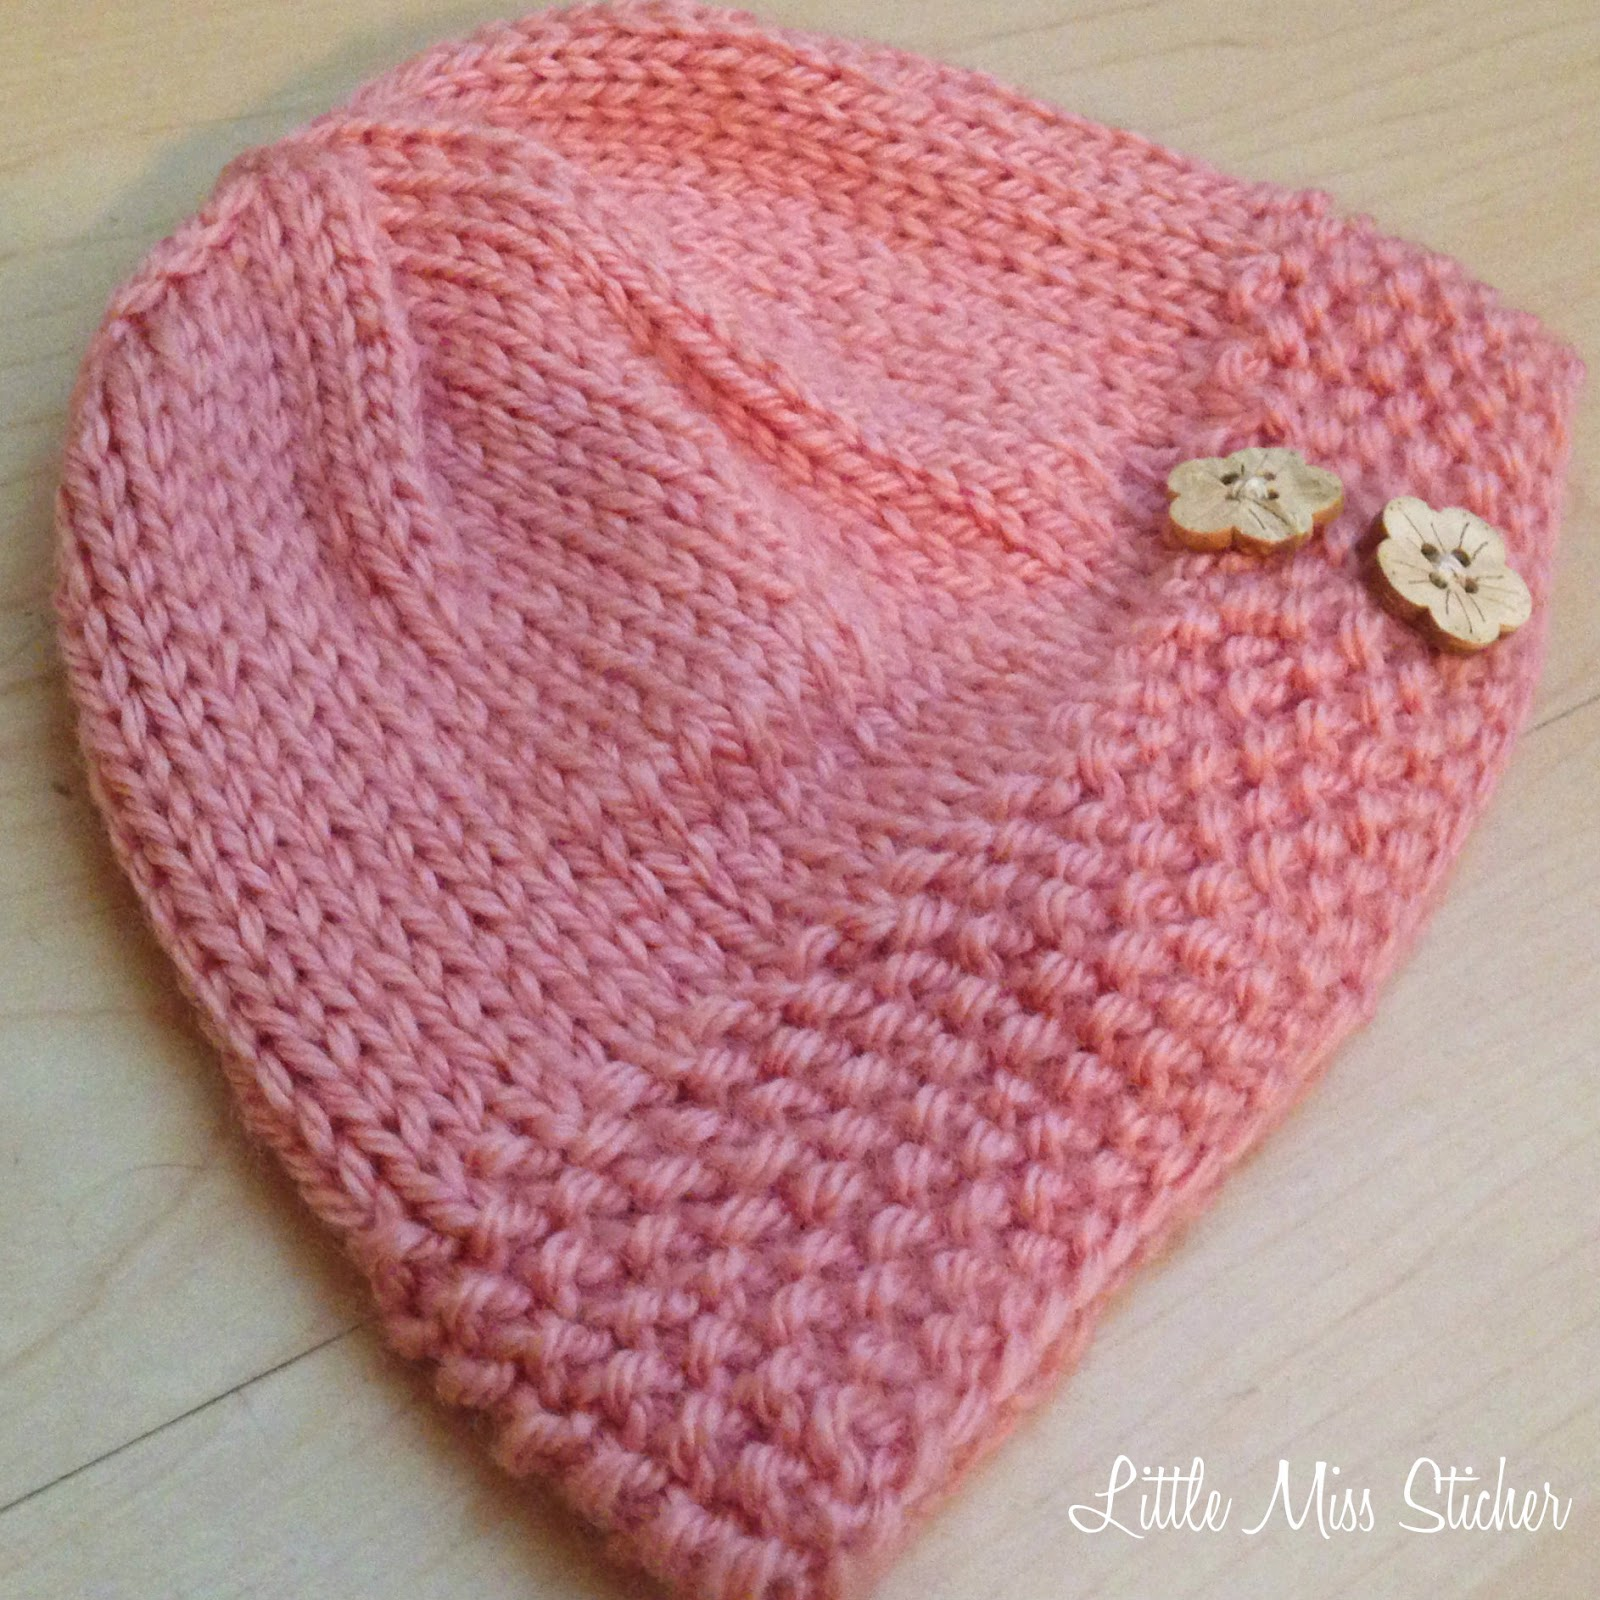 Knitting Patterns For Childrens Hats Free : Little Miss Stitcher: Bitty Beanie Free Knit Pattern